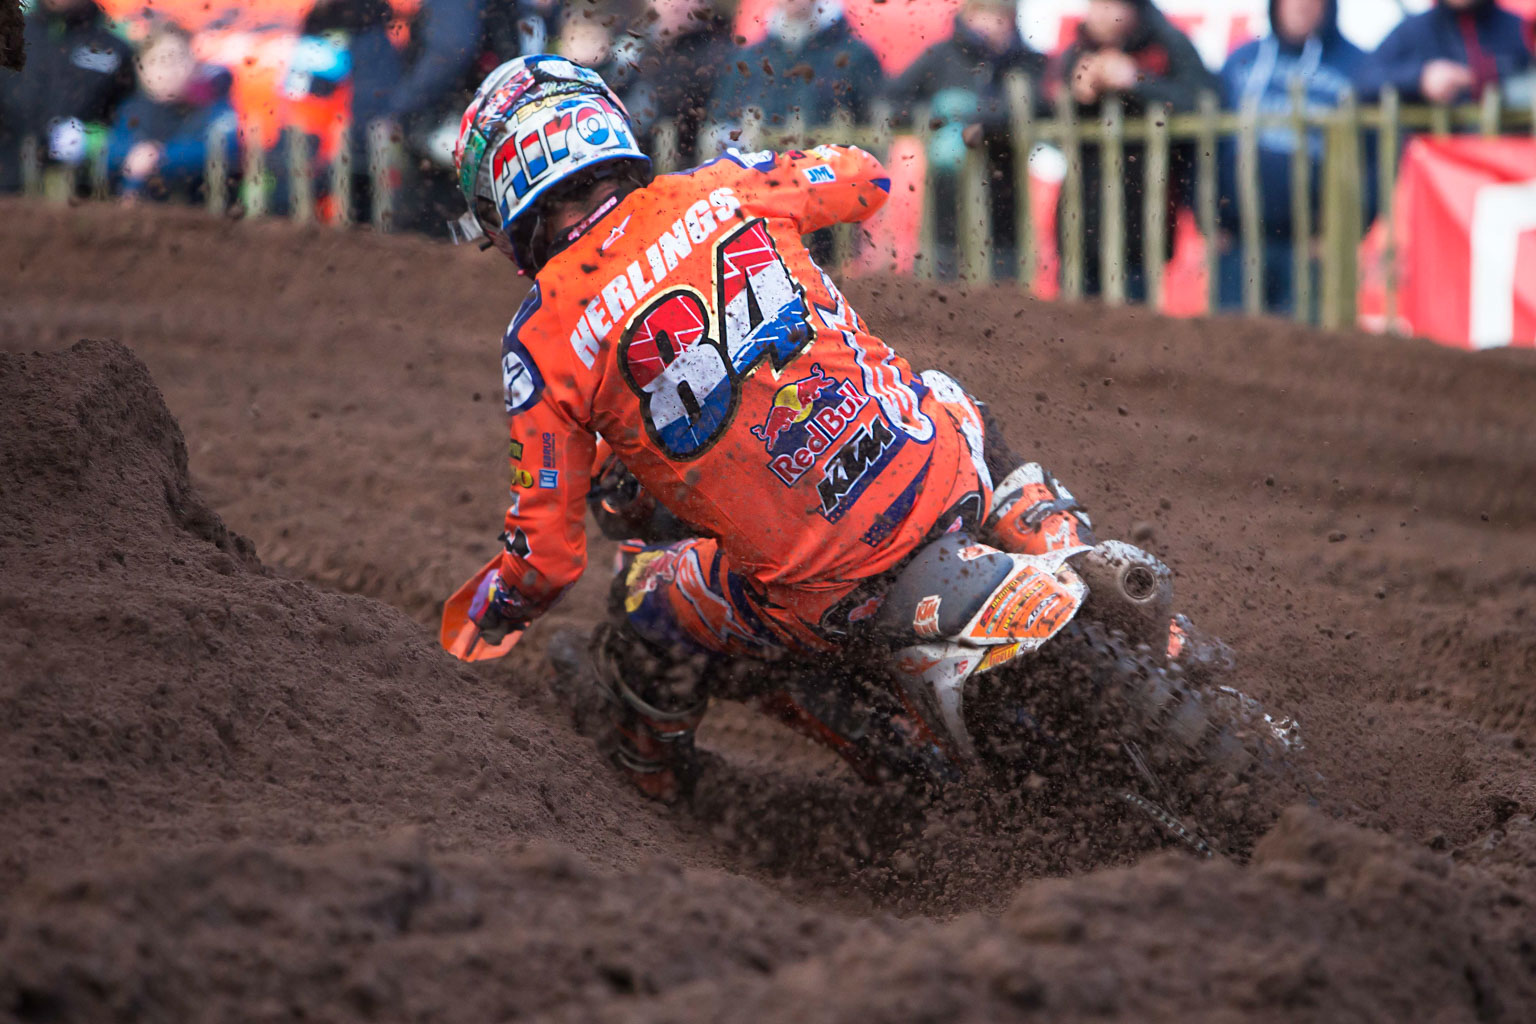 Herlings was unstoppable